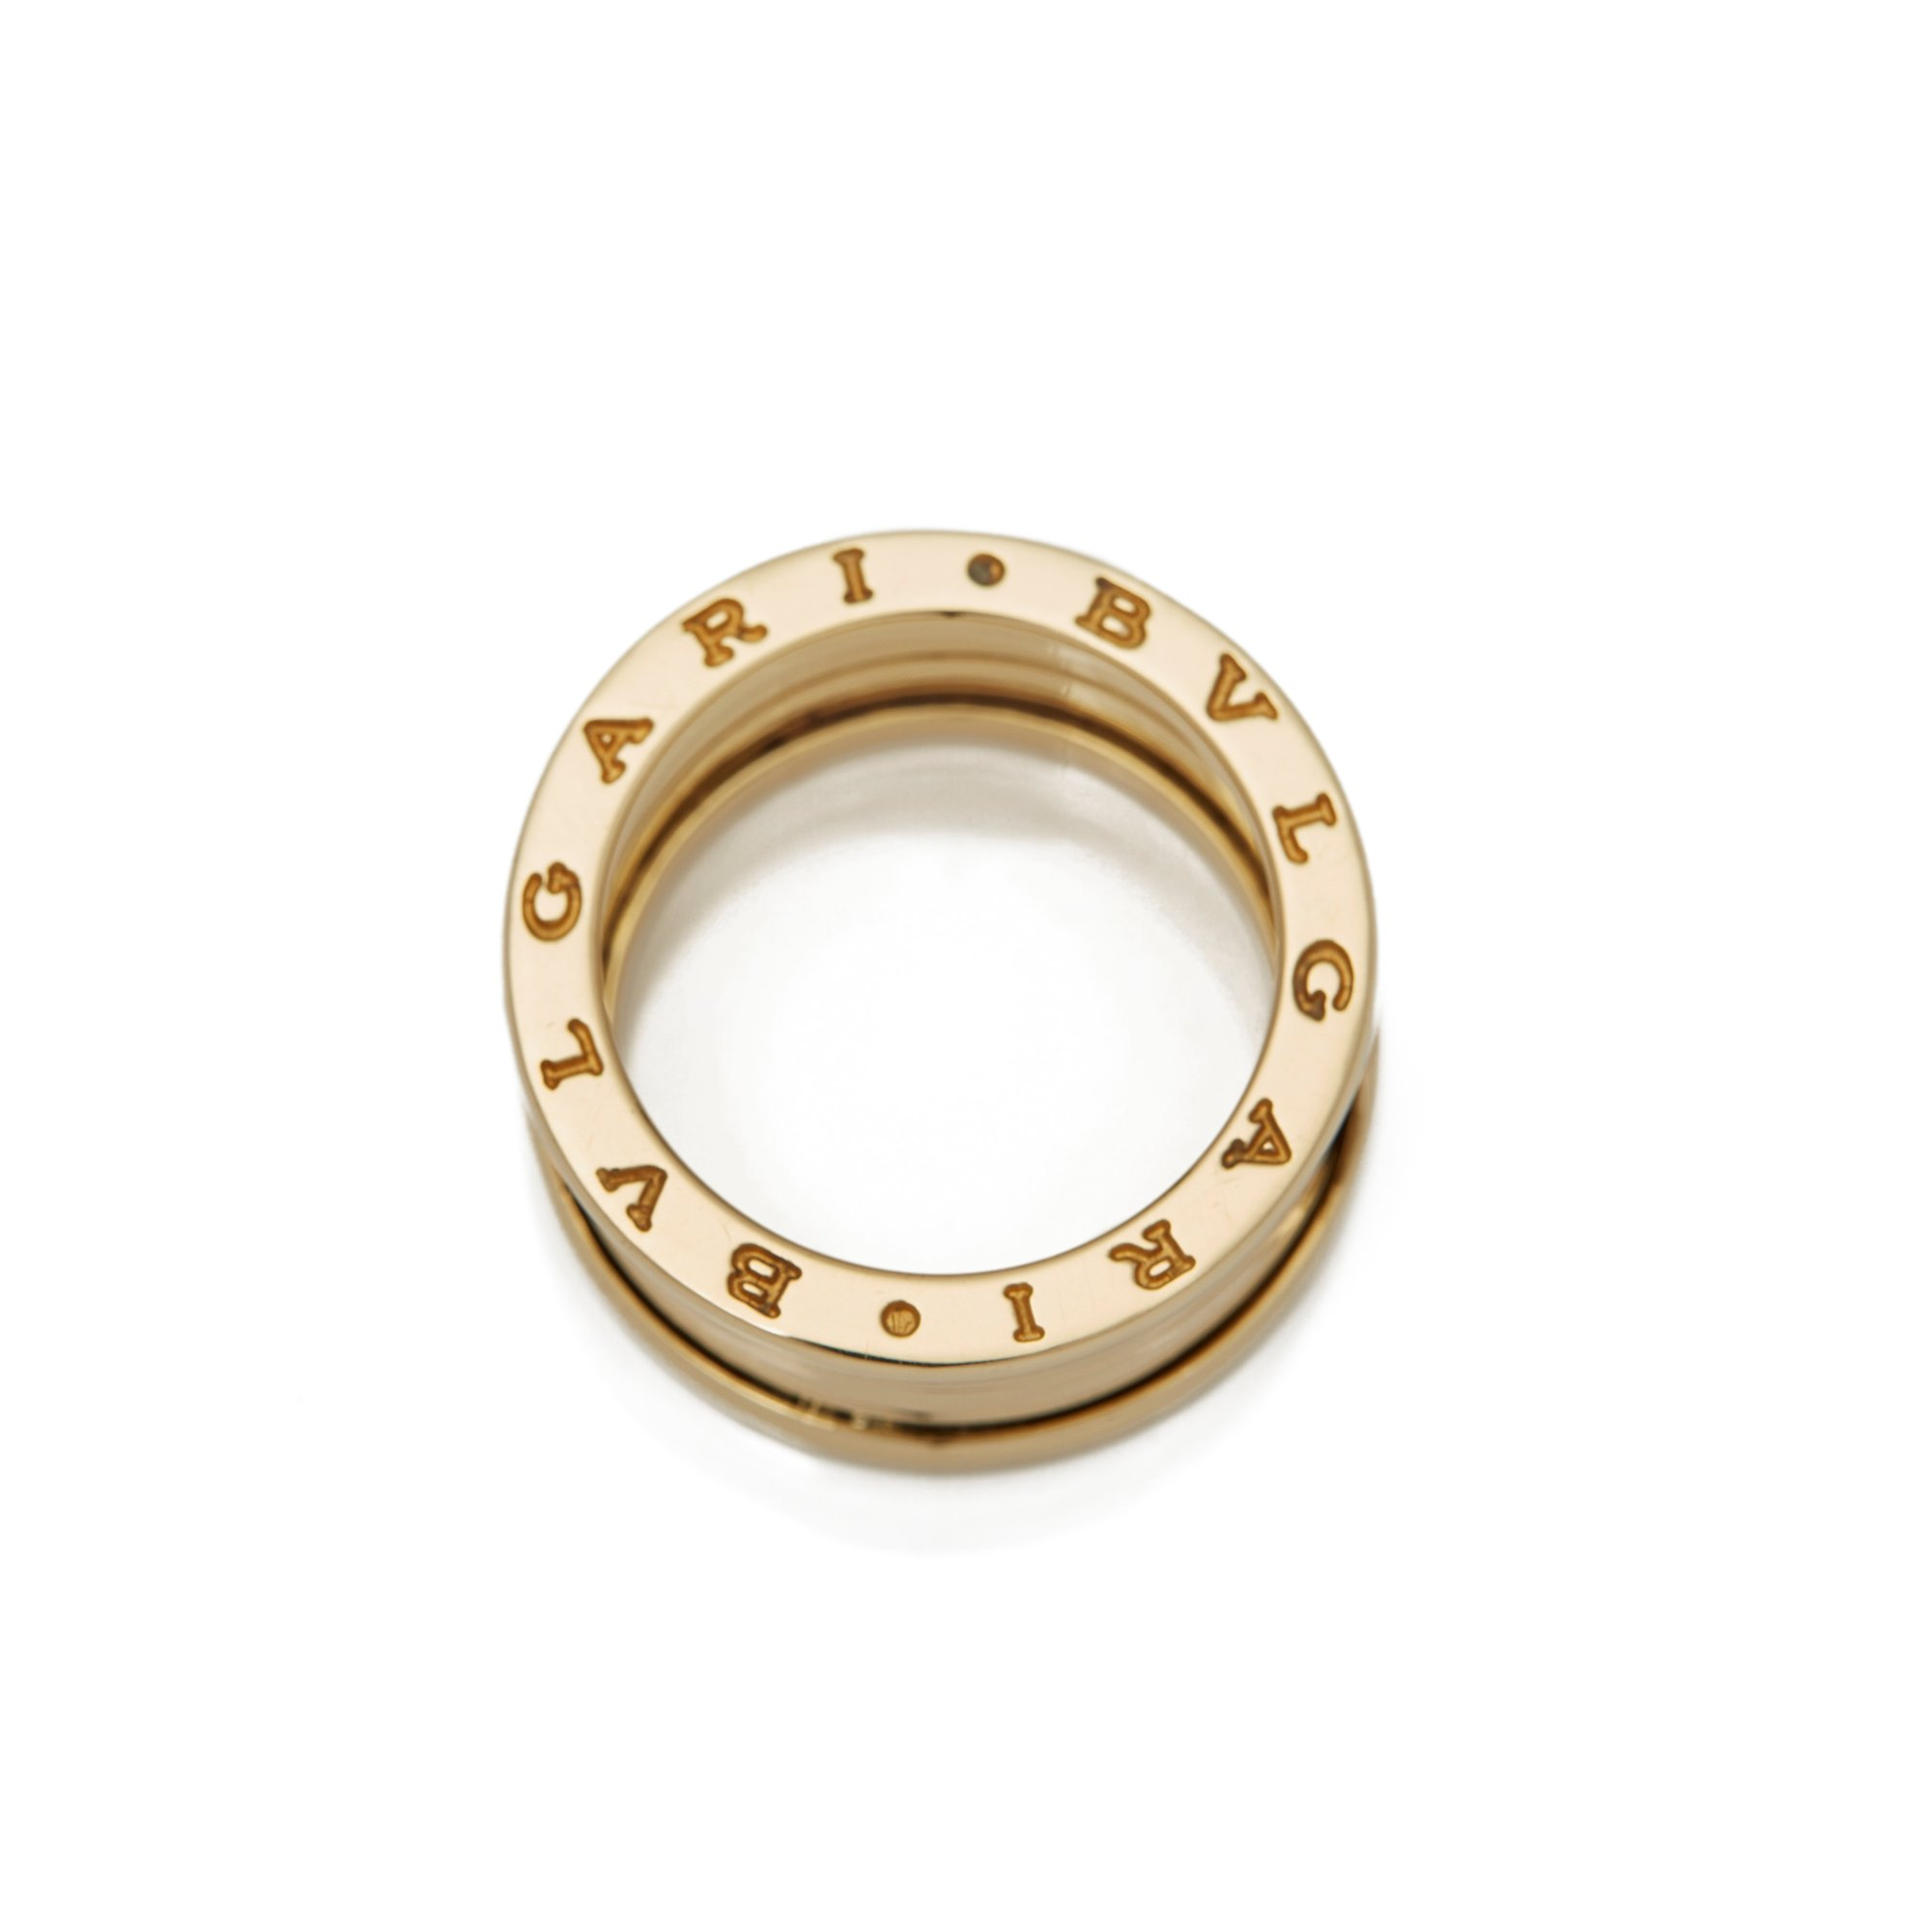 Bulgari 18k Yellow Gold 4 Band B.Zero 1 Ring